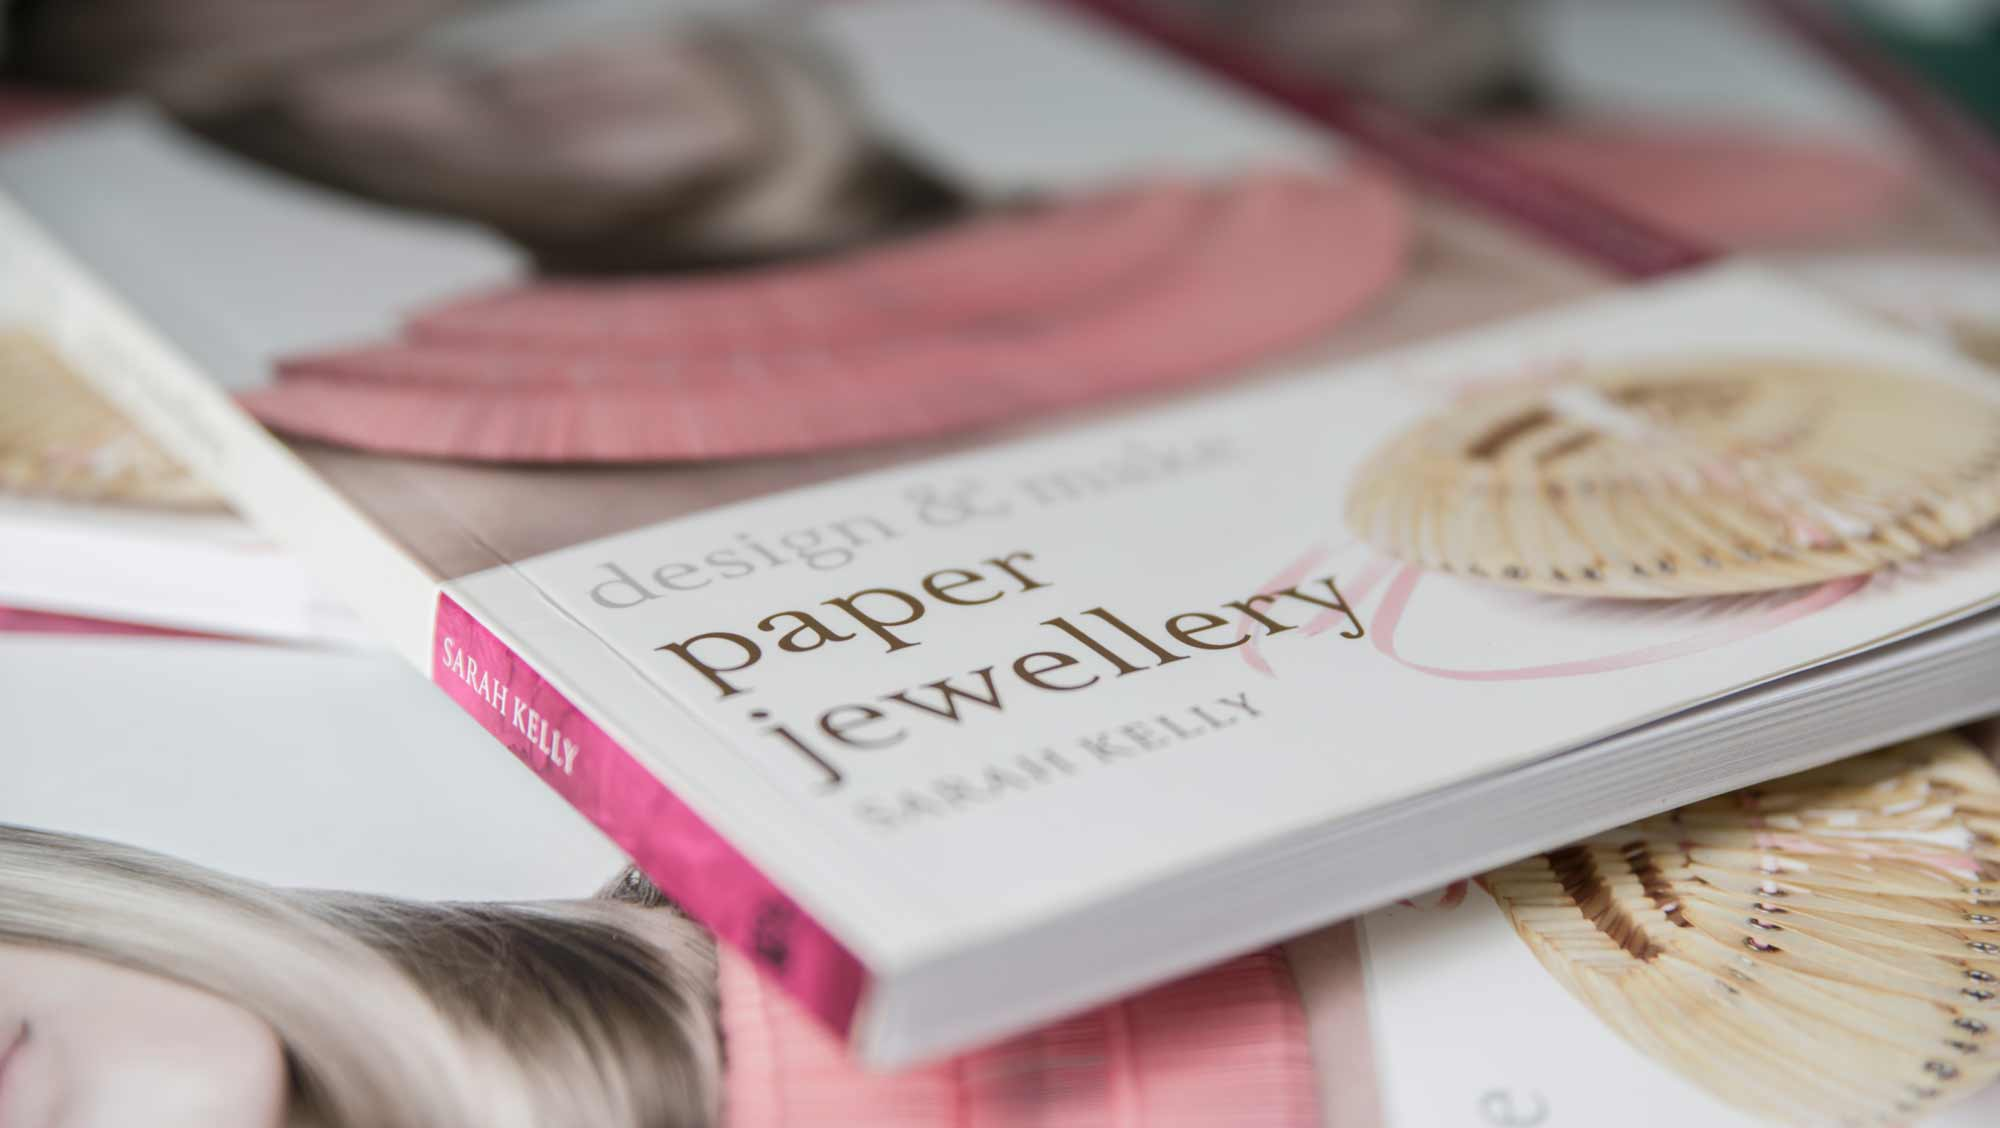 Jewellery Design Shropshire Jewellery Book